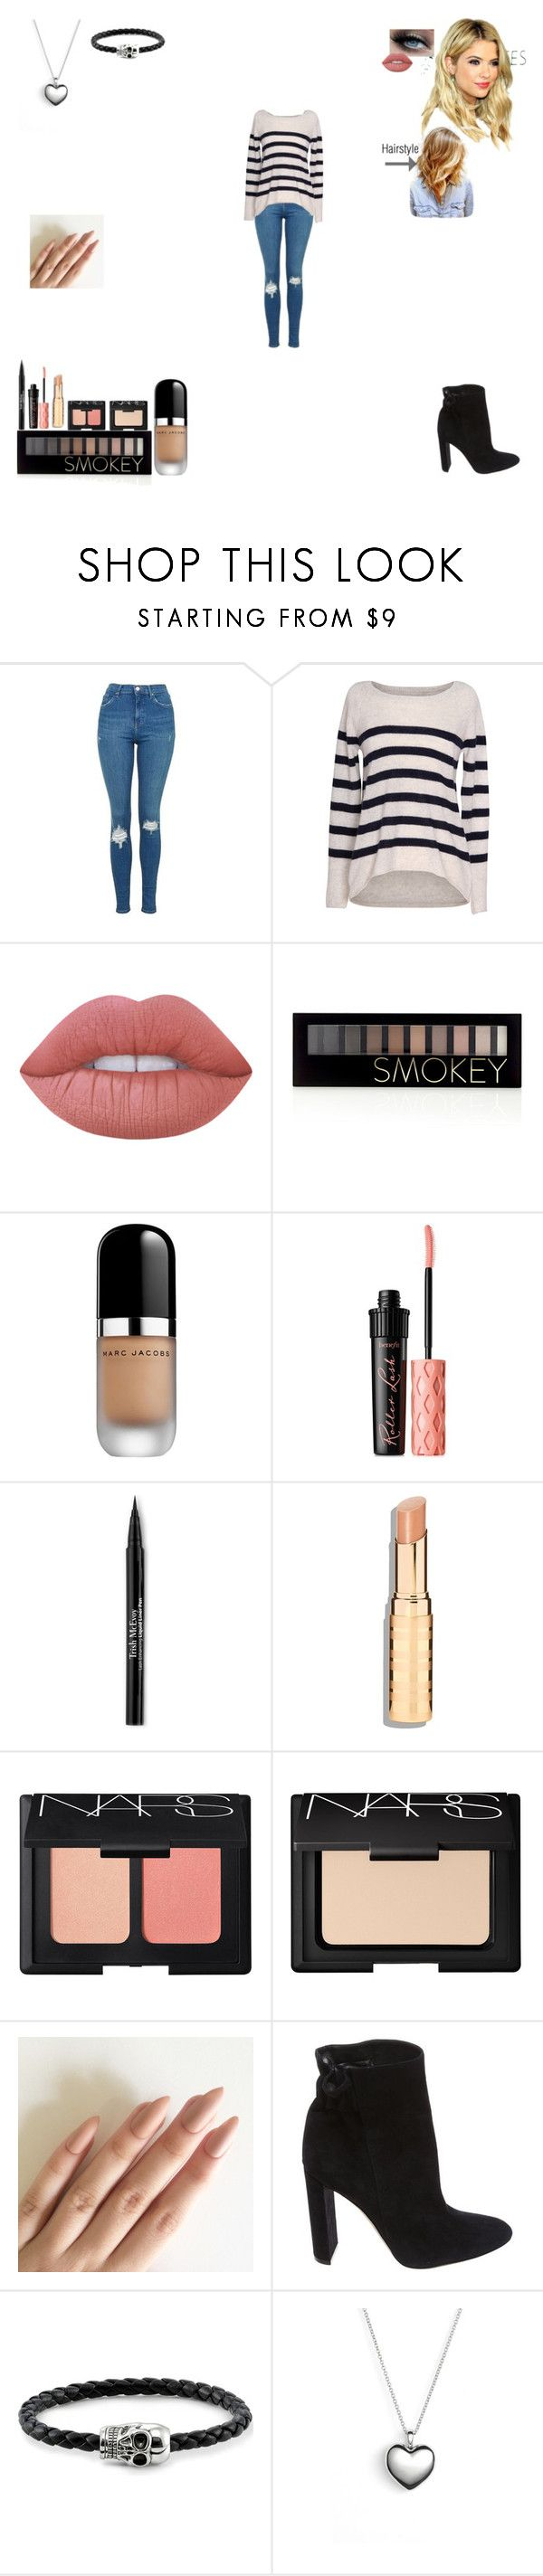 """Untitled #72"" by fcongreve ❤ liked on Polyvore featuring Topshop, Velvet by Graham & Spencer, Lime Crime, Forever 21, Marc Jacobs, Benefit, Trish McEvoy, NARS Cosmetics, Christian Dior and Thomas Sabo"